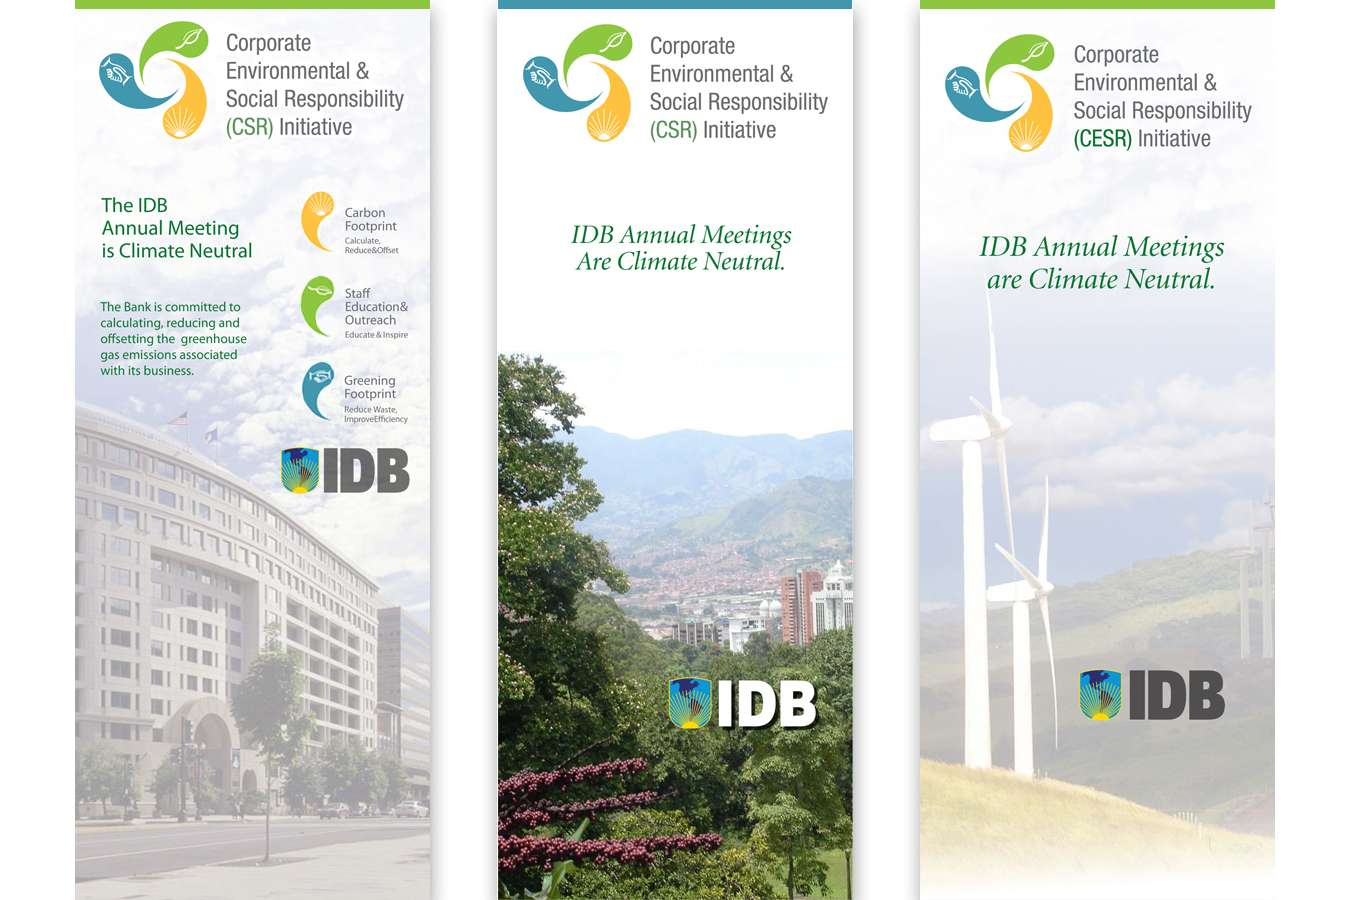 IDB 3 banners : IDB Climate Neutral Meeting Banners